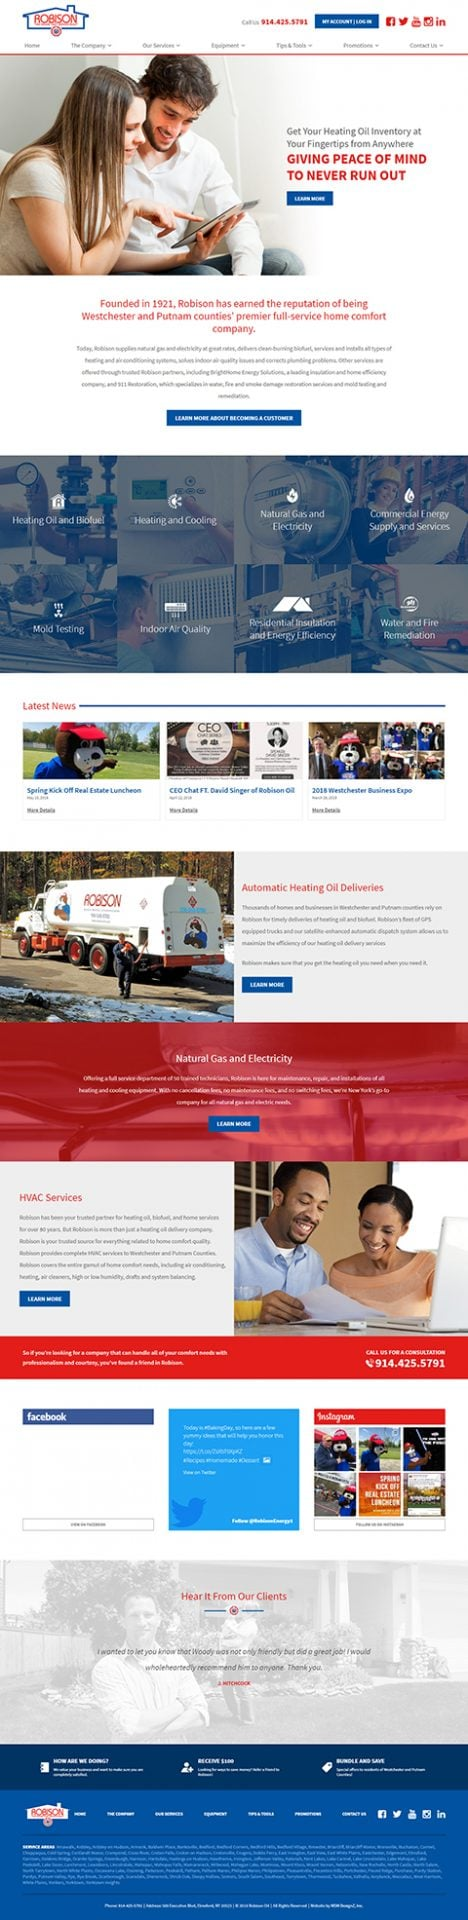 Robison Oil website homepage